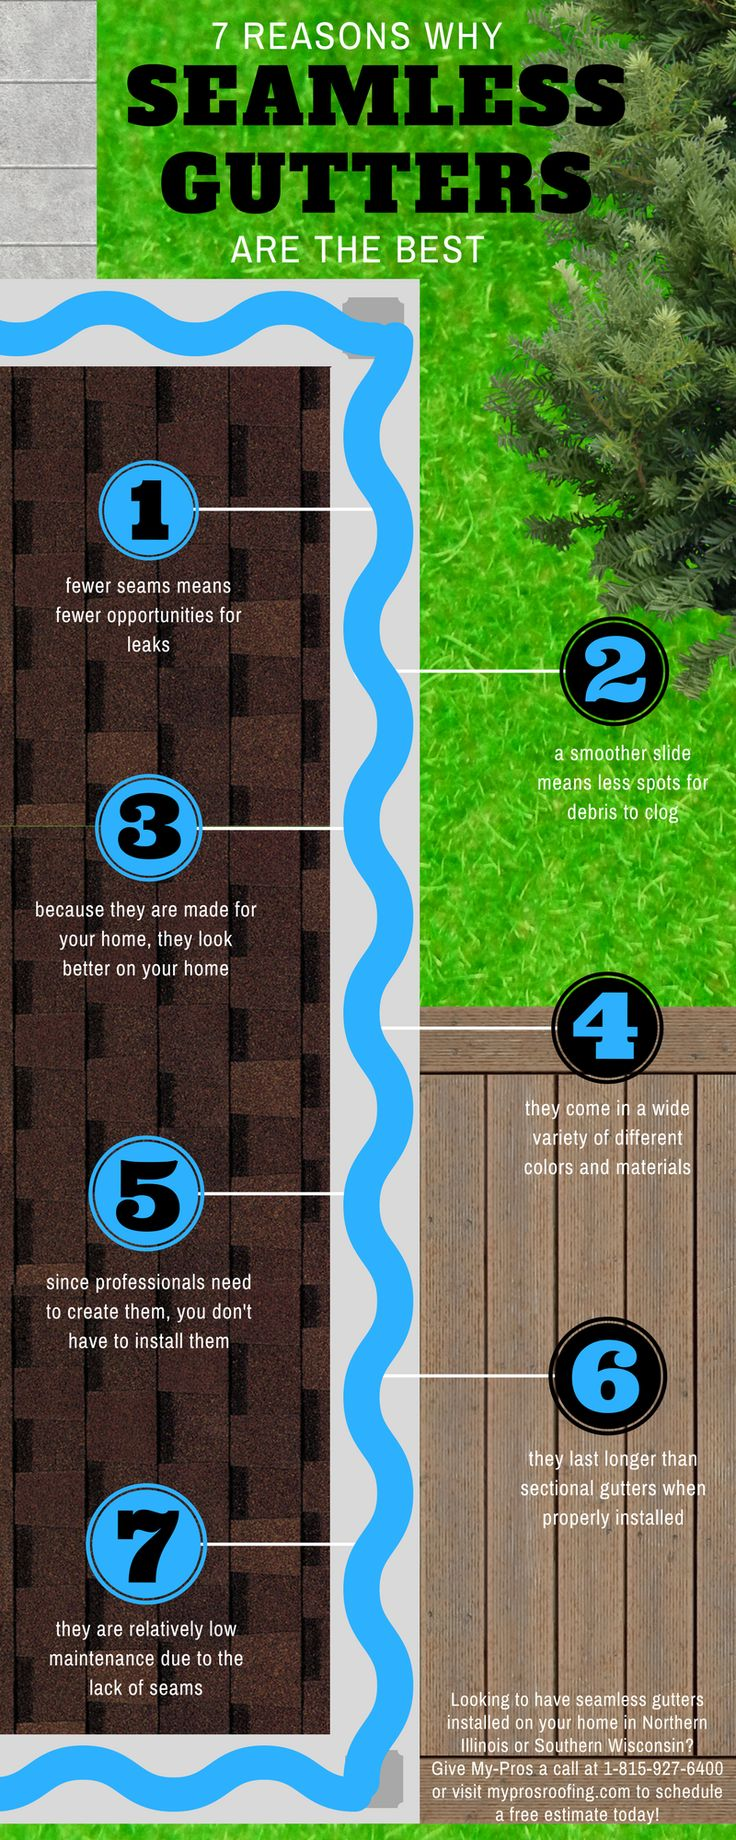 7 Reasons Why Seamless Gutters Are The Best